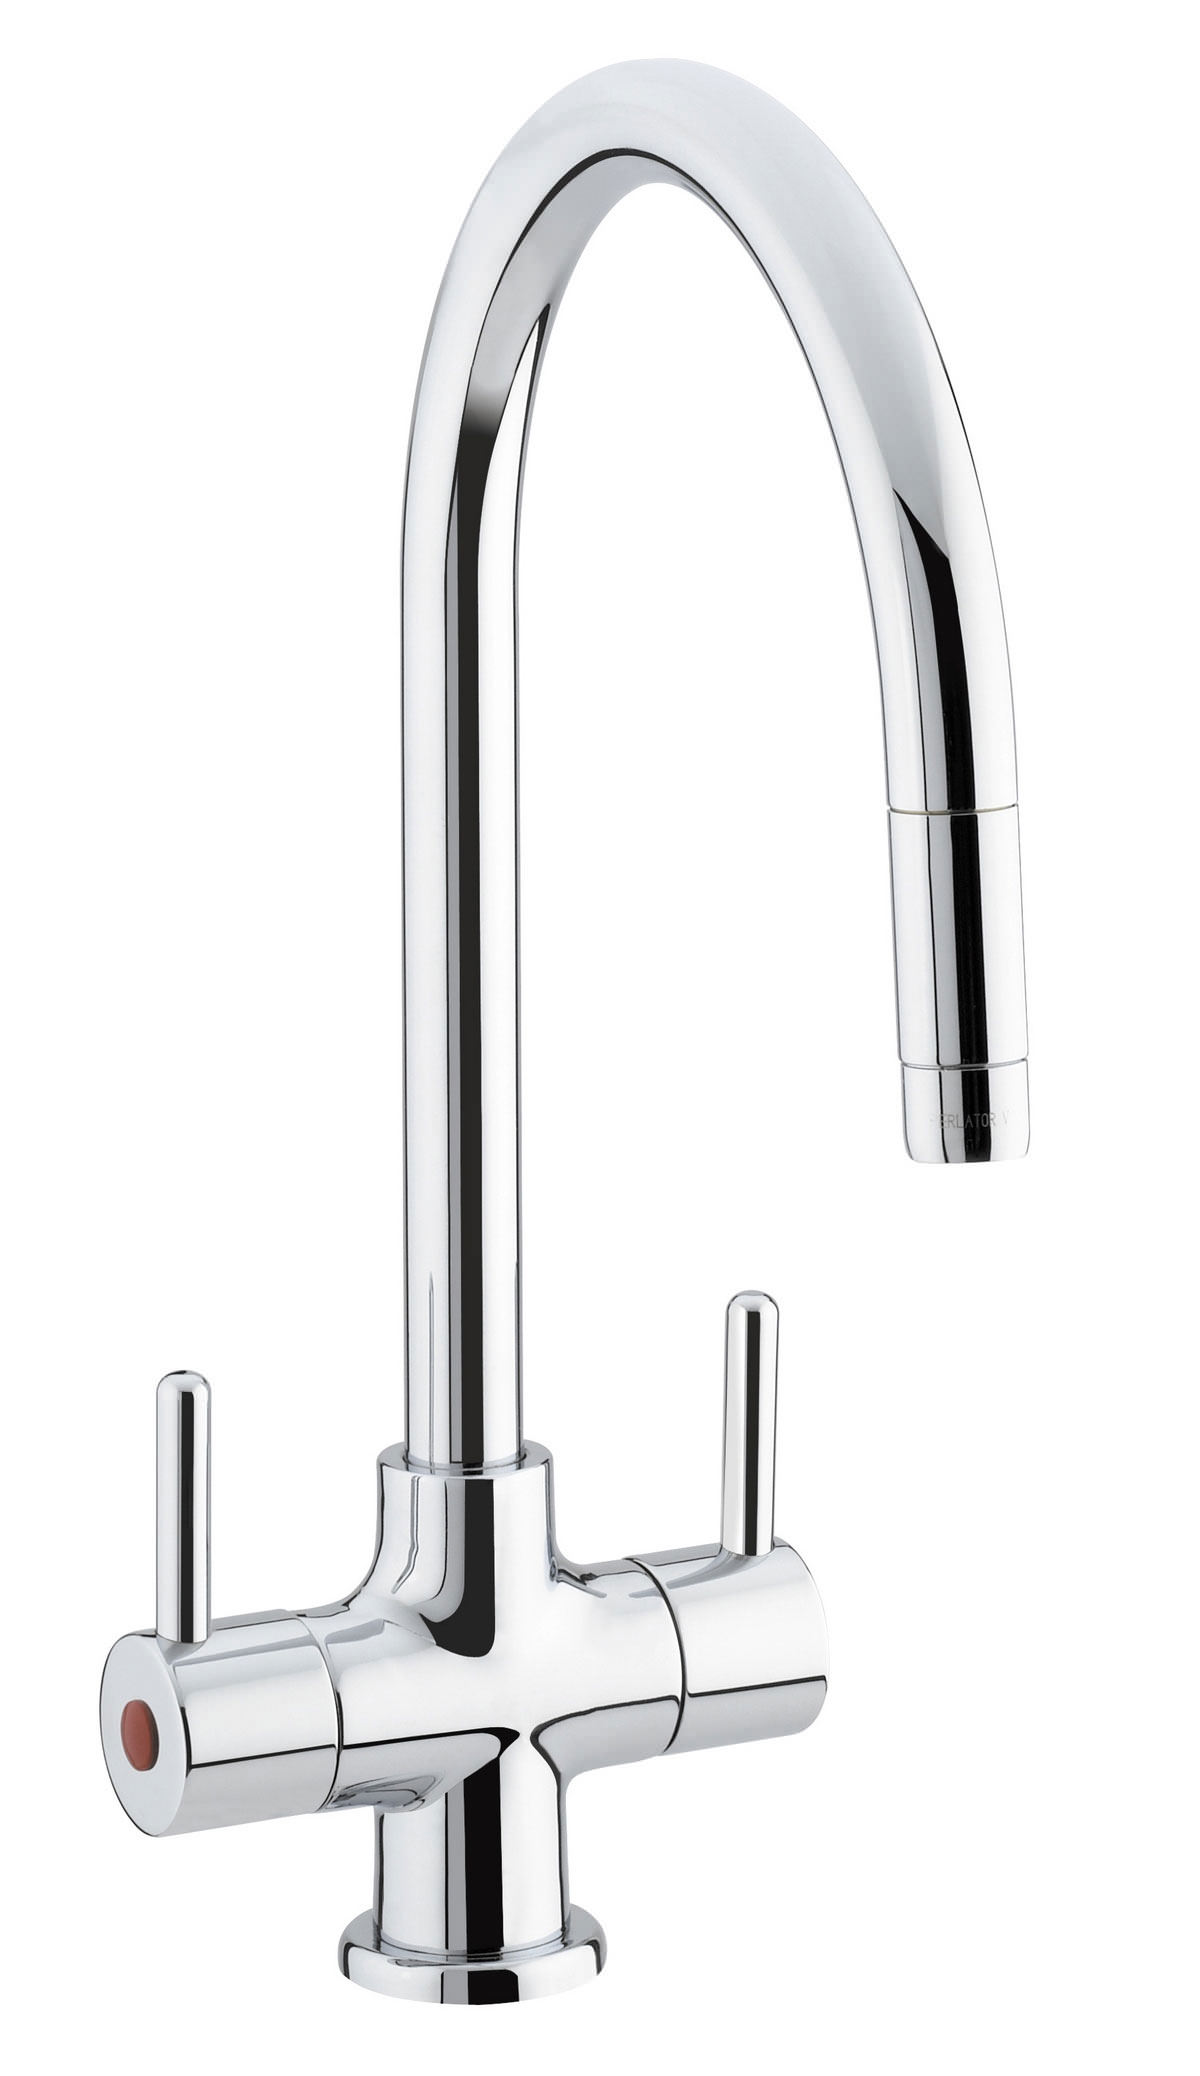 monobloc mixer taps kitchen sink bristan beeline chrome kitchen sink mixer tap with pull 9289